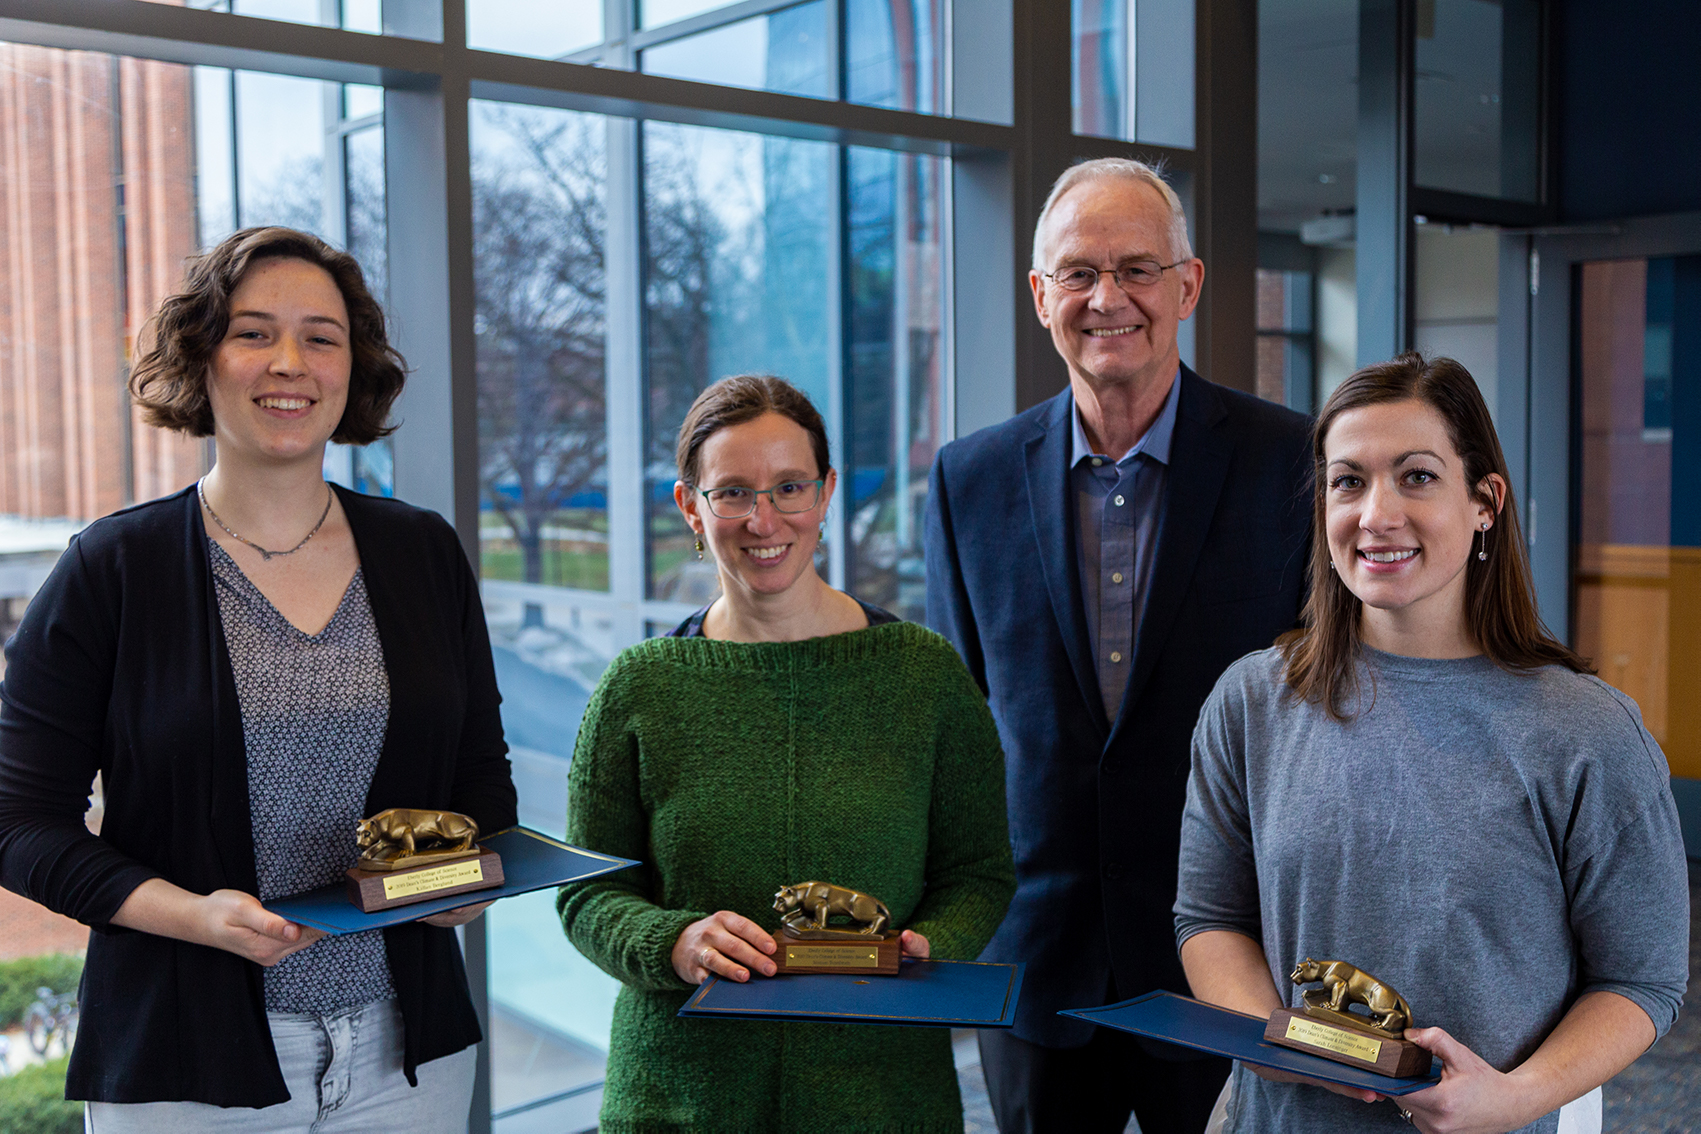 2019 Climate and Diversity Award winners pose with Dean Cavener